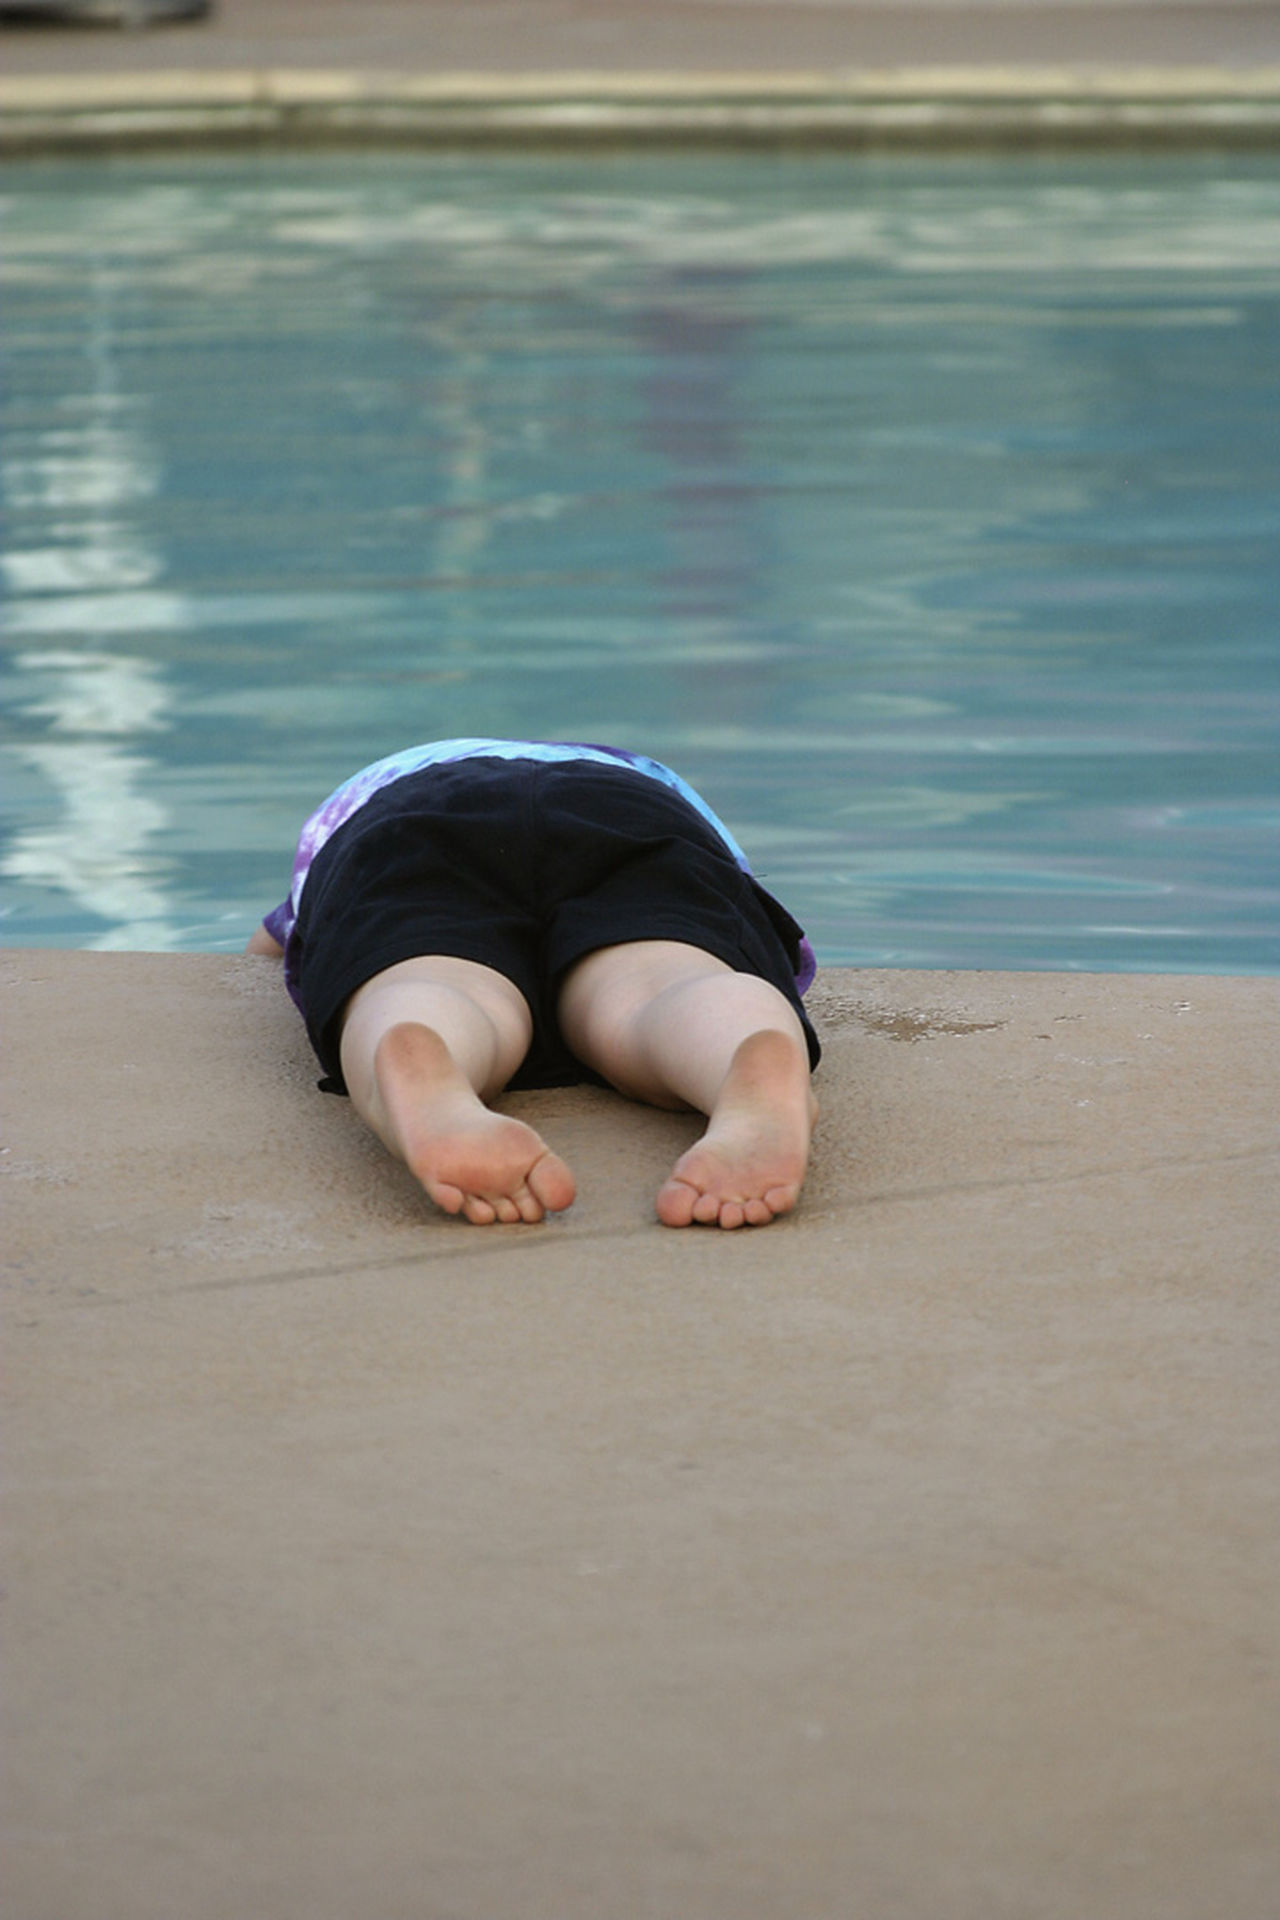 Kid Childsplay Children Swimming Pool Falling Down Laying Down Flat Out